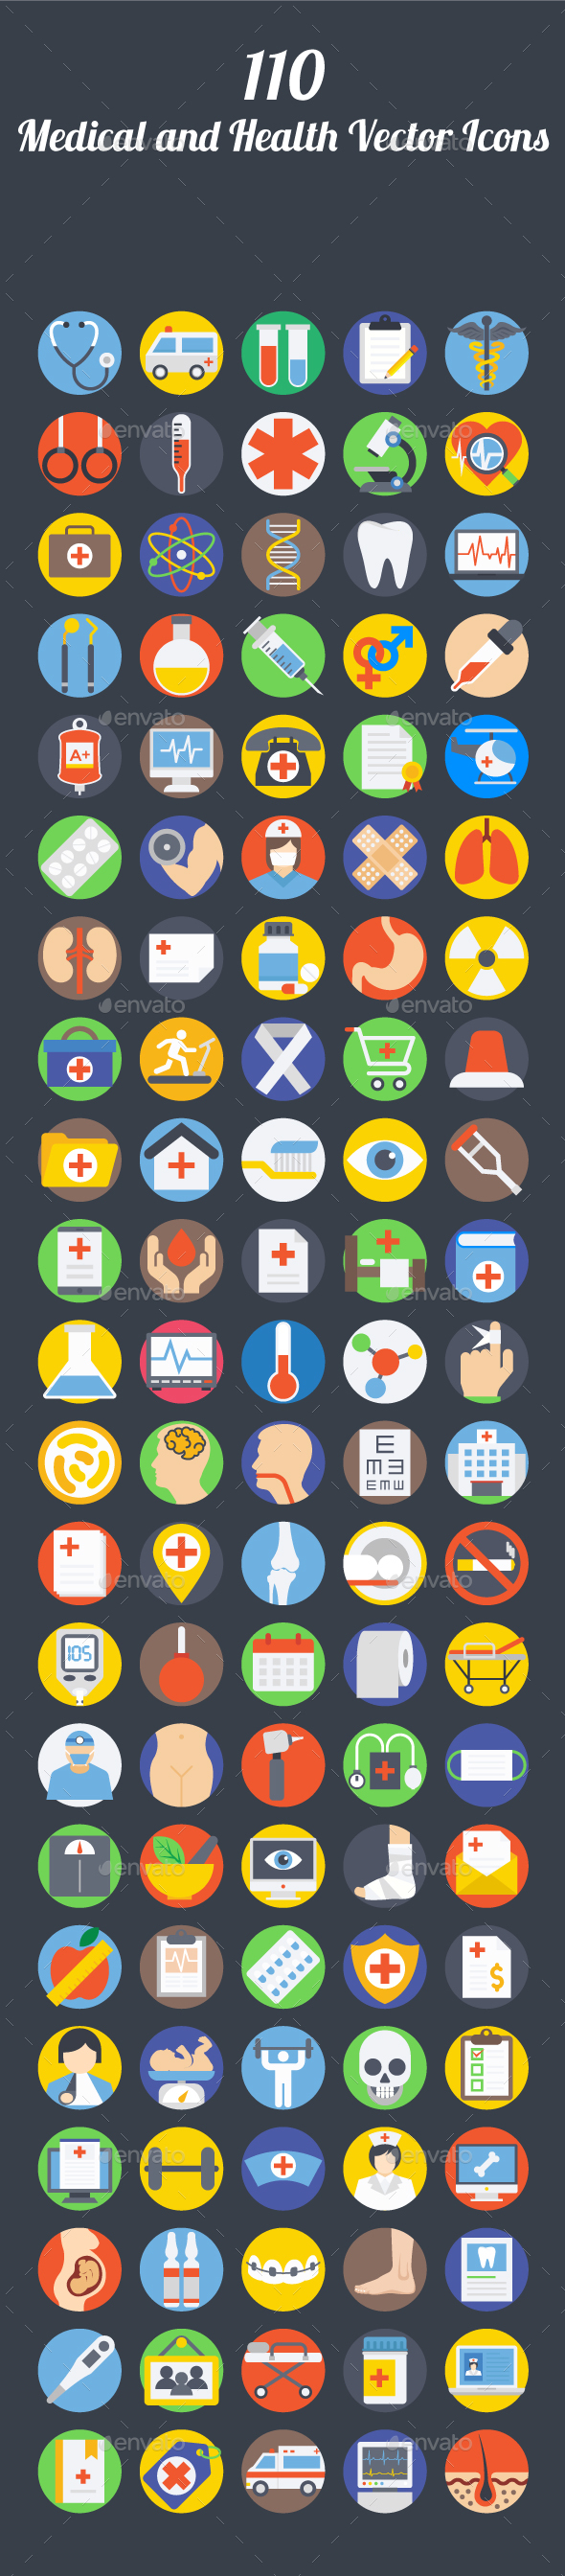 110 Medical and Health Vector Icons - Icons